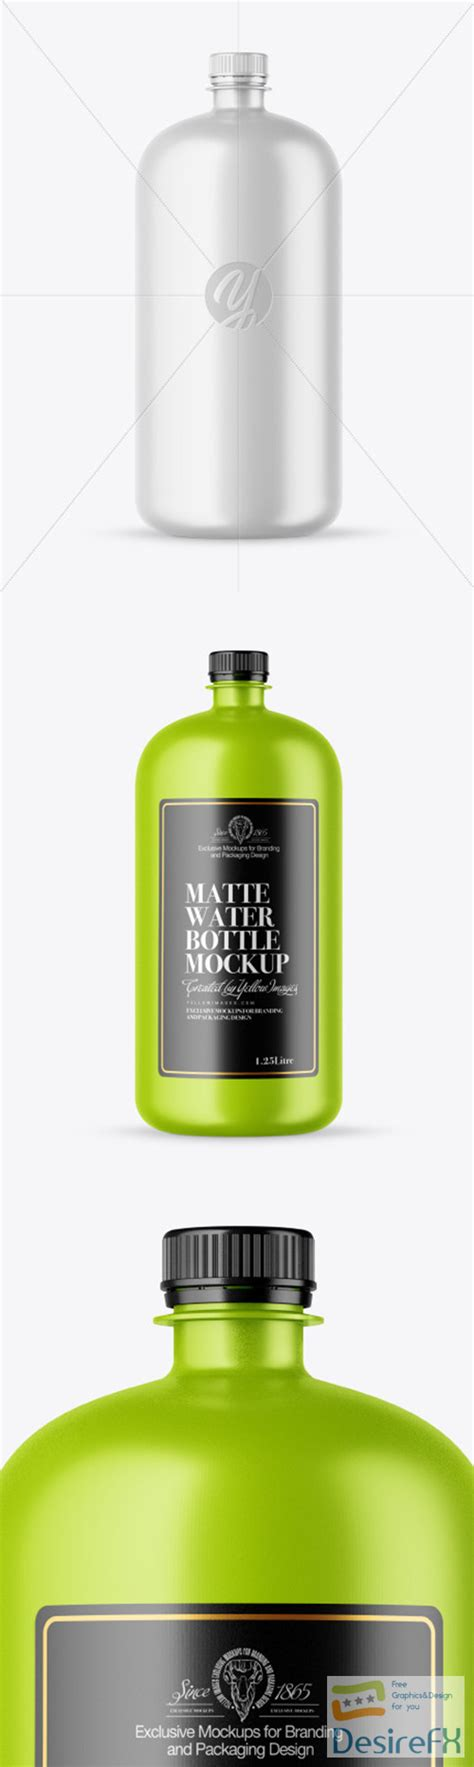 This mockup is available for purchase on yellow images only. Desirefx.com | Download Matte Water Bottle Mockup 51987 TIF